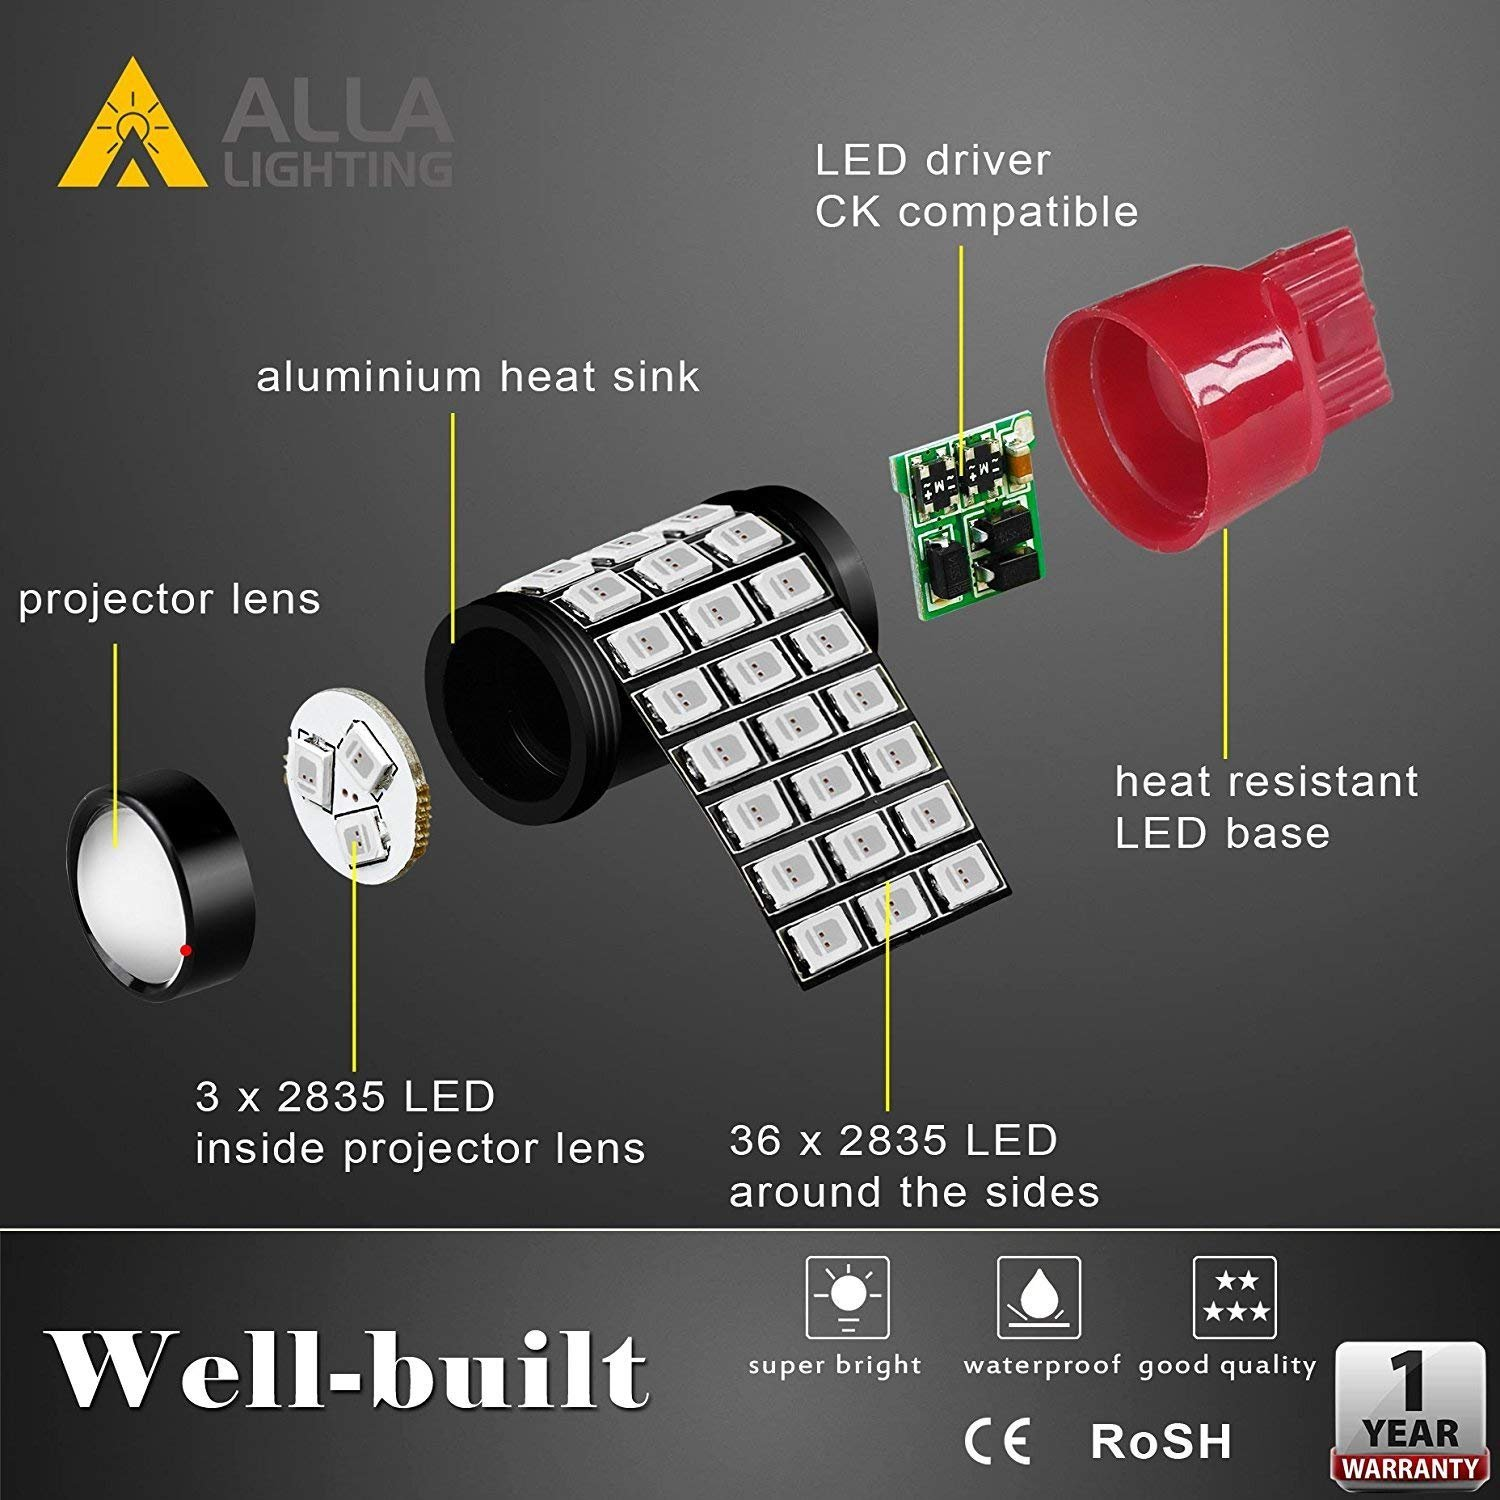 Alla Lighting 7440 7443 Led Strobe Brake Lights Bulbs Solid State 555 Ic Stroboscope Super Bright T20 Flashing Pure Red High Power